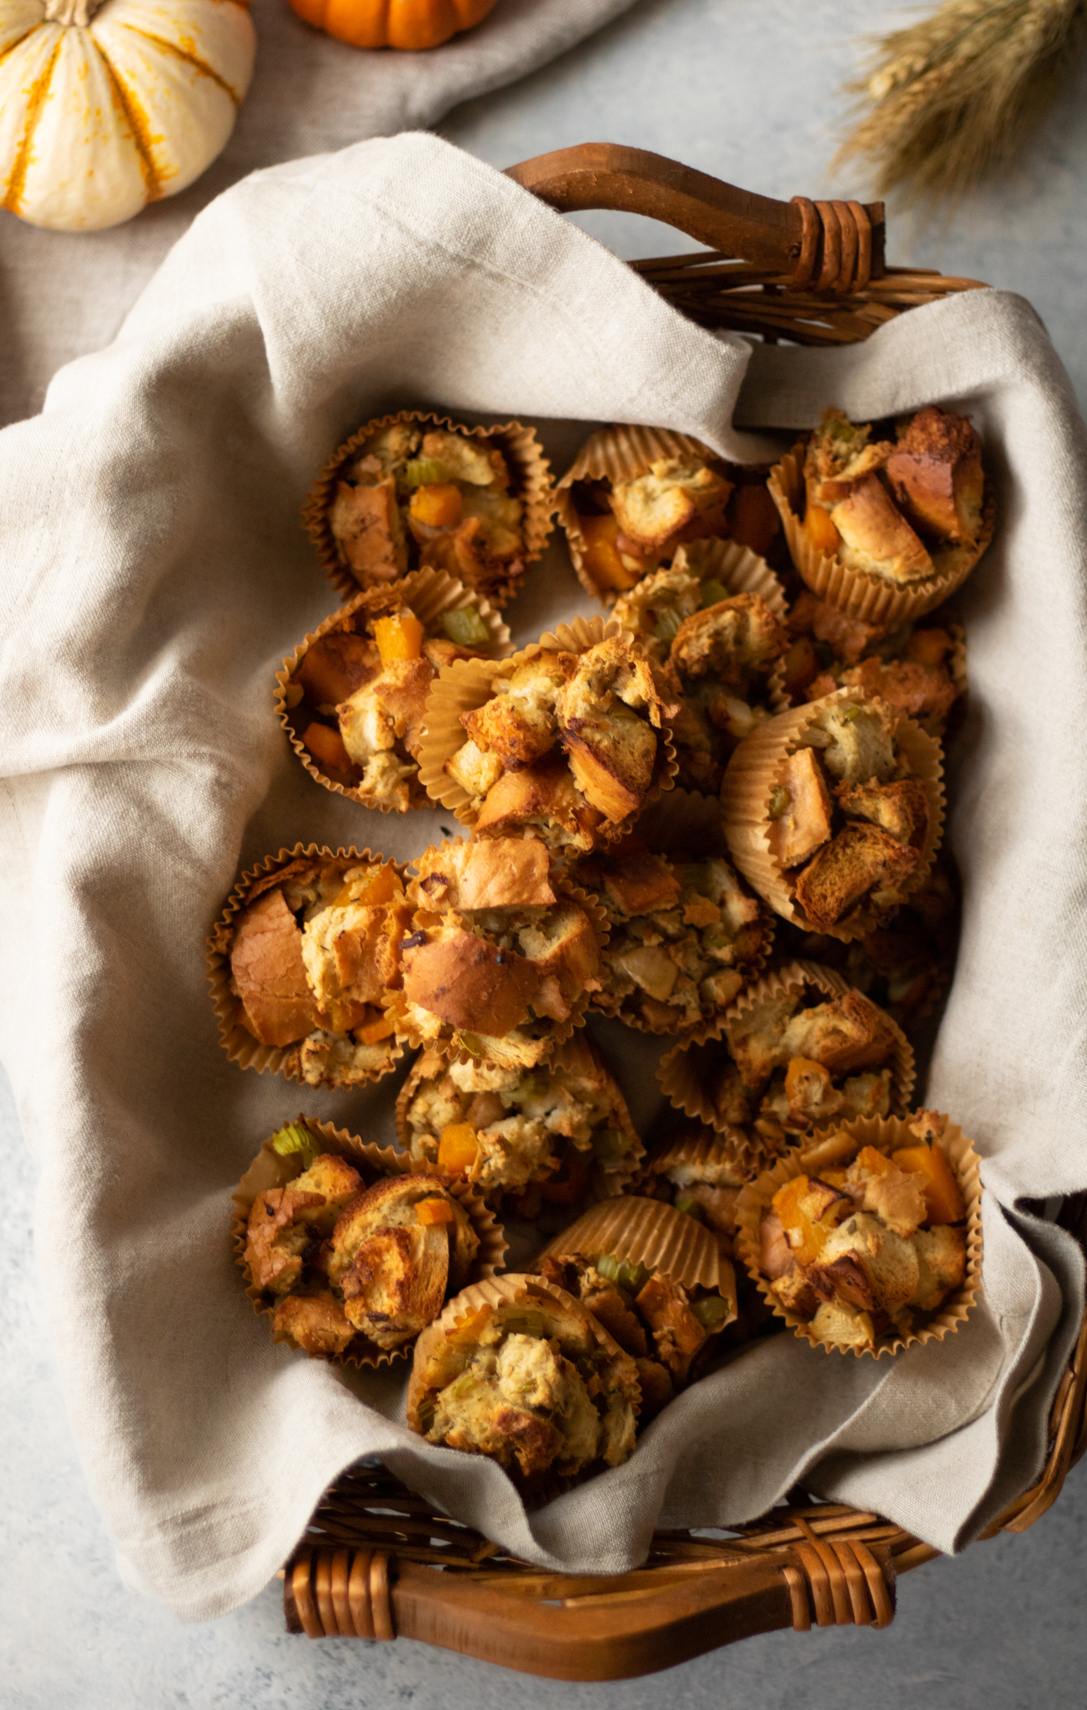 Let us take the stress out of your holiday dinner menu with this simple, portable side dish recipe! These Butternut Sausage Stuffing Muffins are perfect for an office potluck, family gathering, or Friendsgiving.